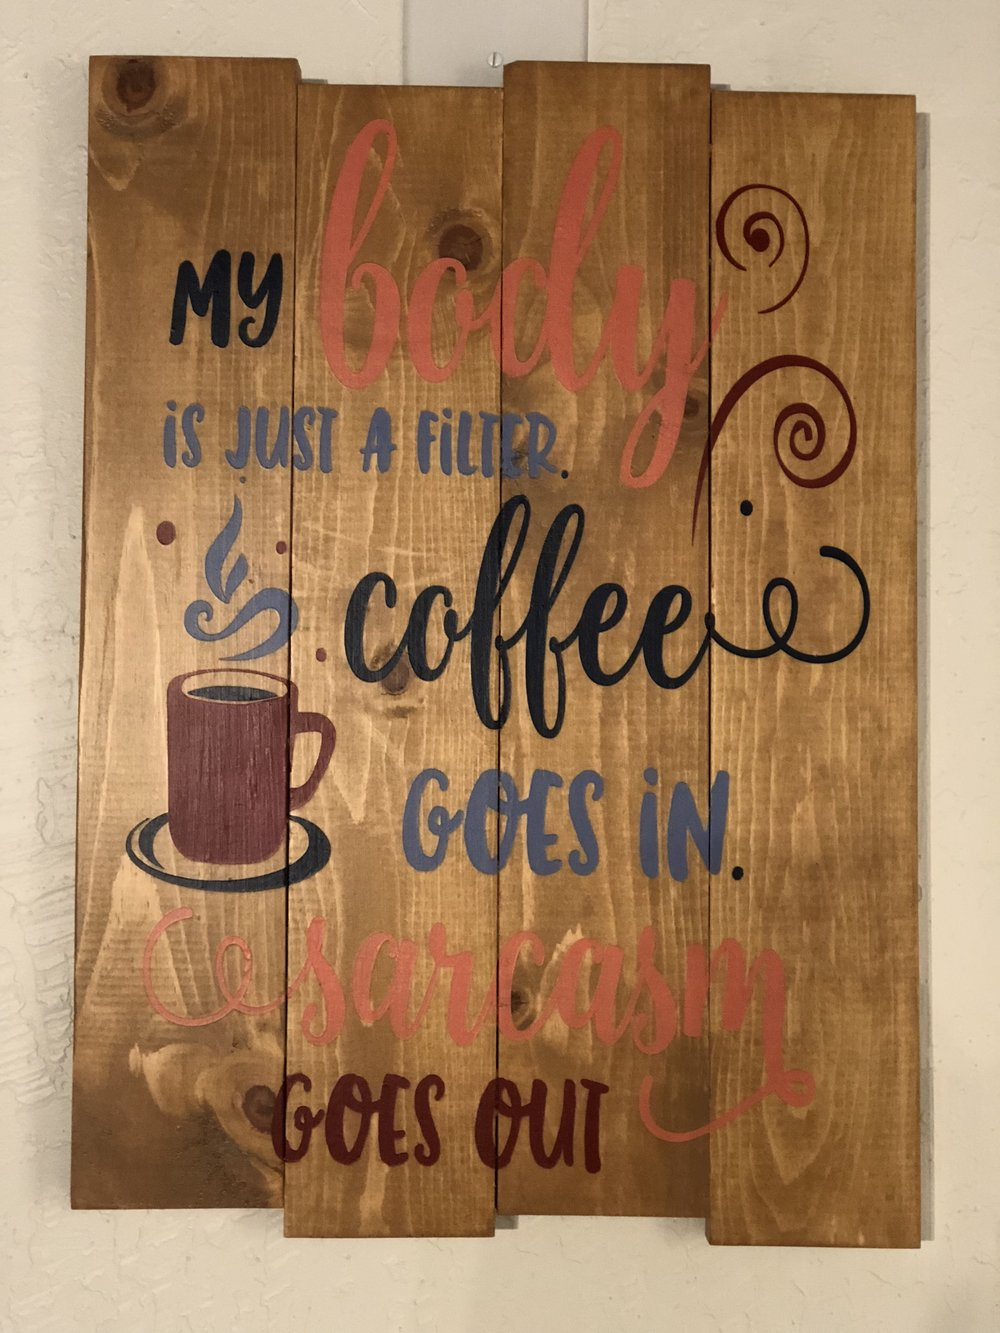 My body is a filter, coffee goes in..